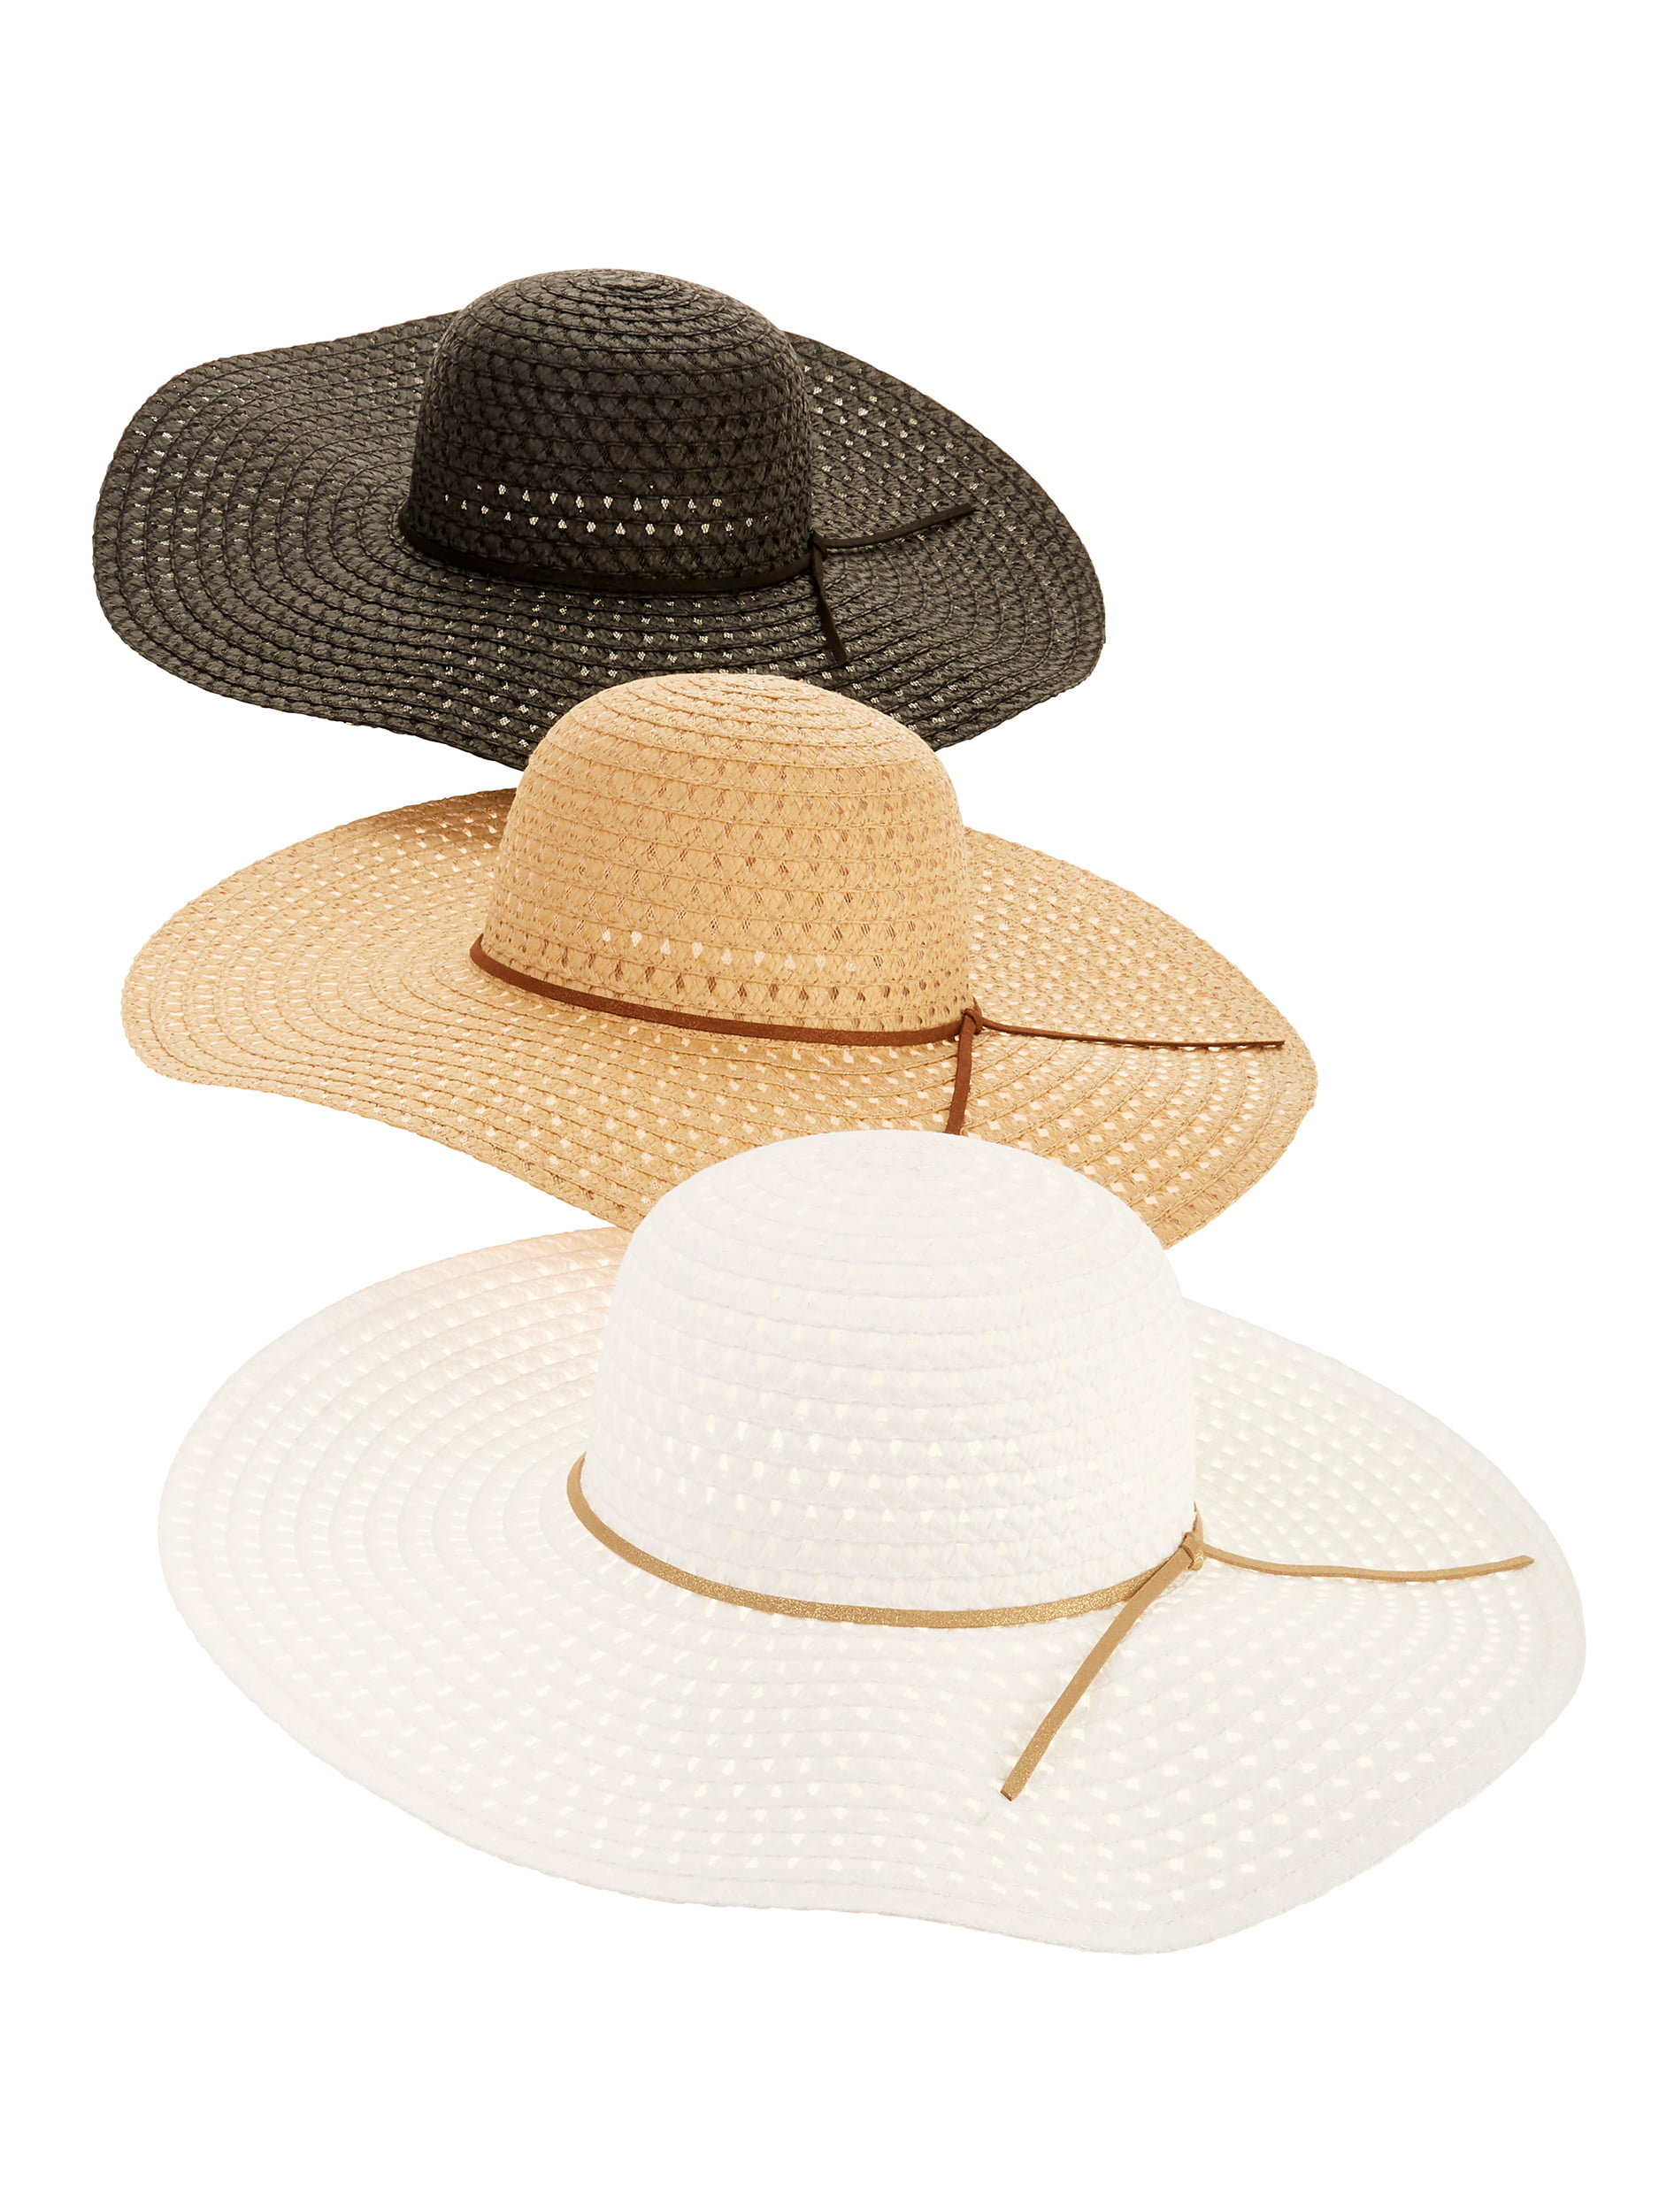 bbfd8c64 Time and Tru - Time and Tru Women's Straw Floppy Hat 3-pack - Walmart.com